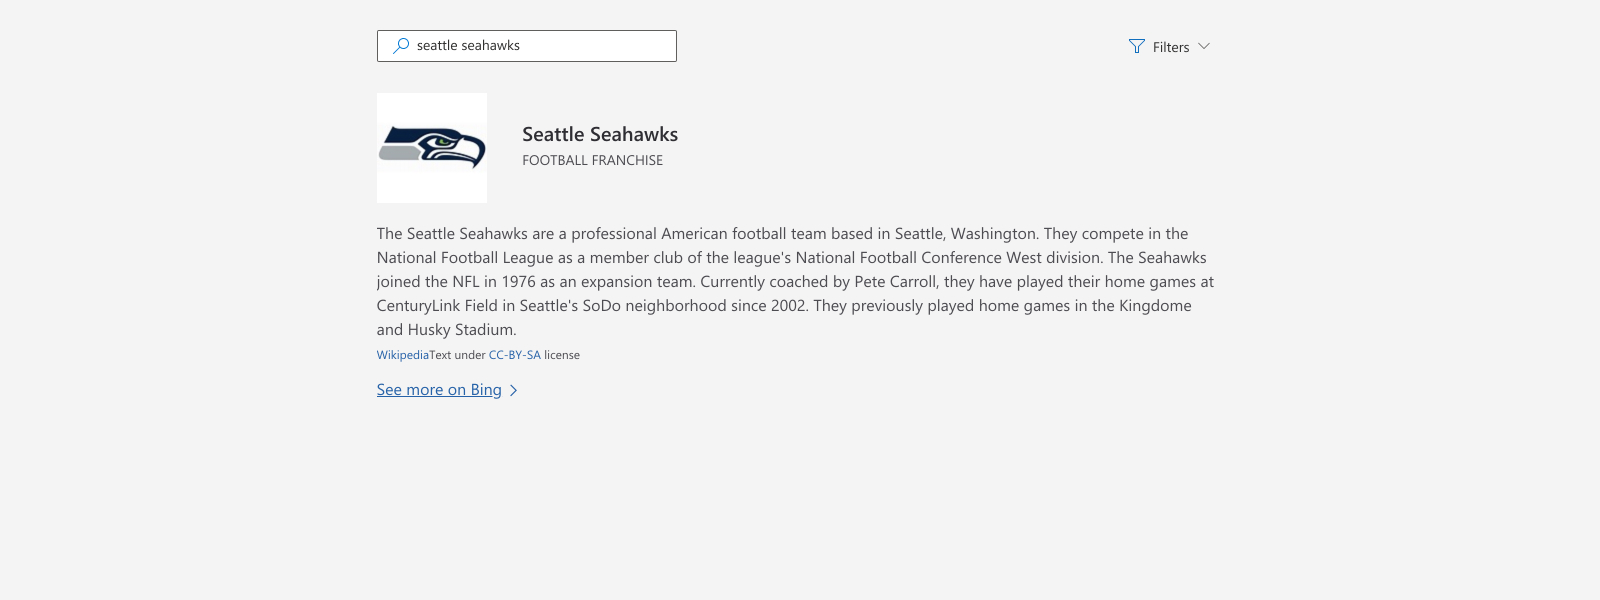 Illustration of looking up information about the Seattle Seahawks.